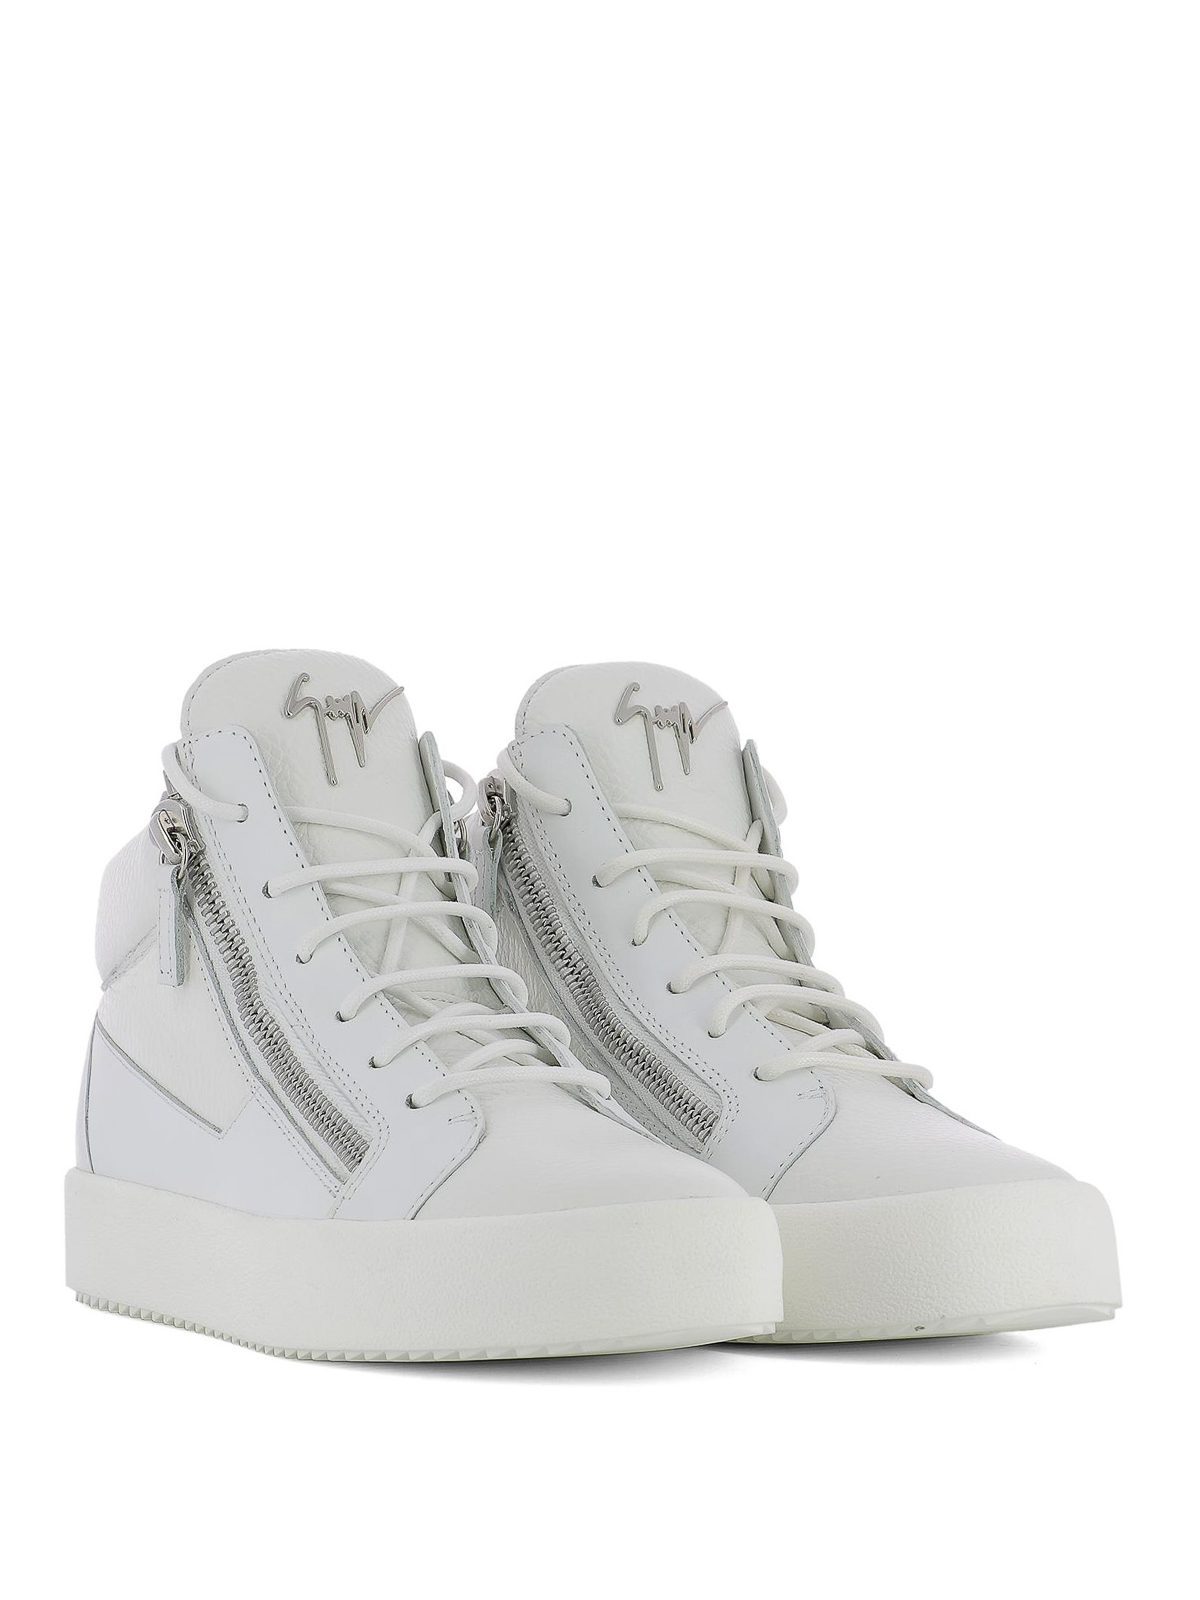 20fbb6bfcc907 Giuseppe Zanotti - Double zip leather sneakers - trainers - RU70009049